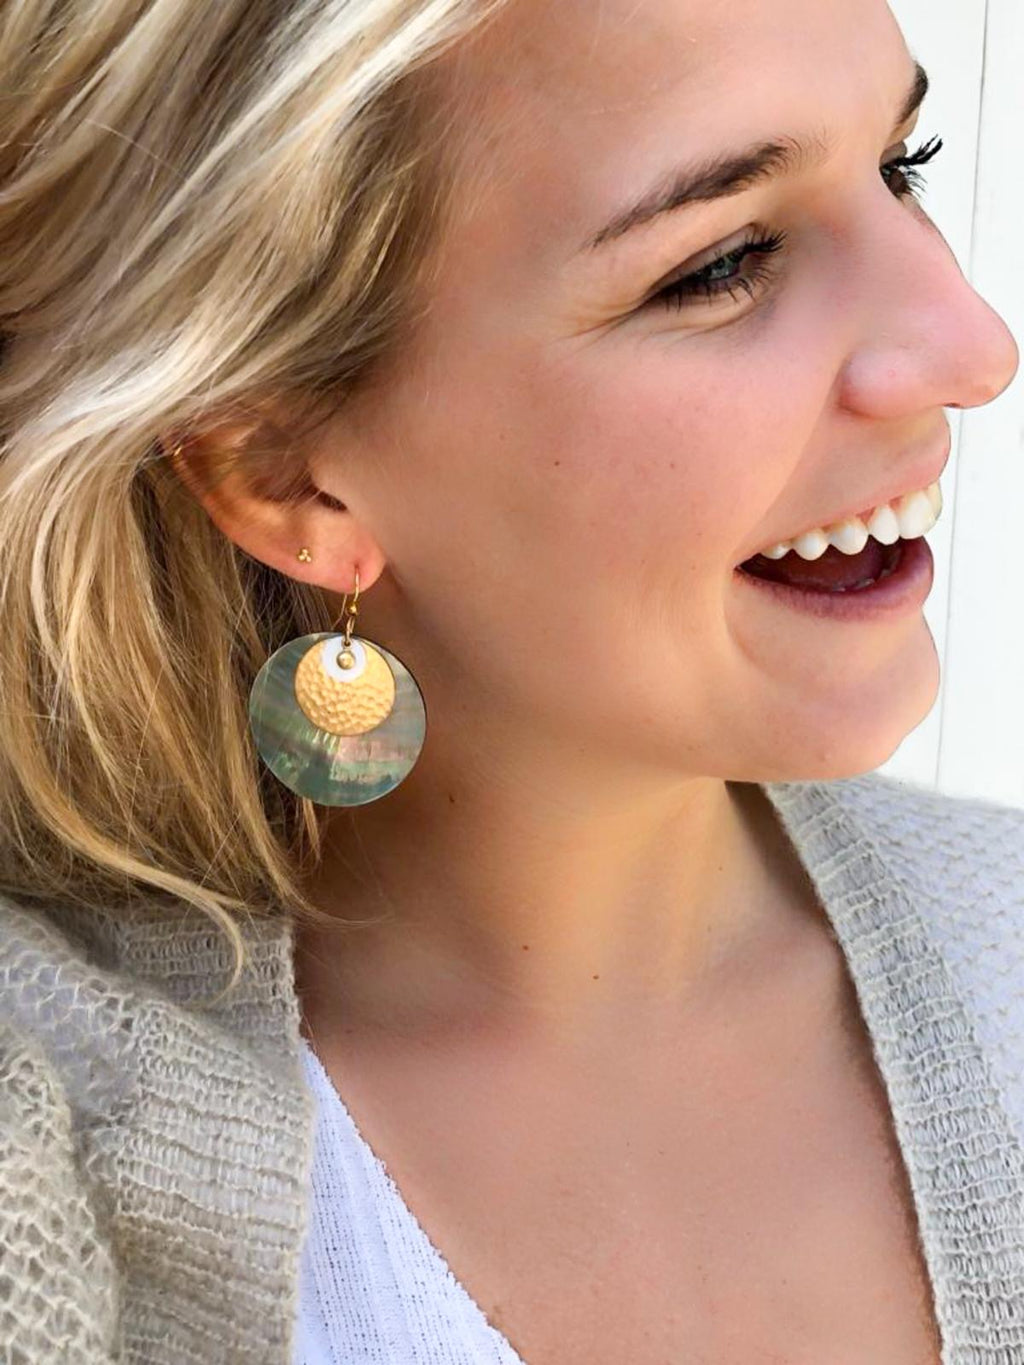 earrings oorbellen sieraden jewelry schelp shell statement